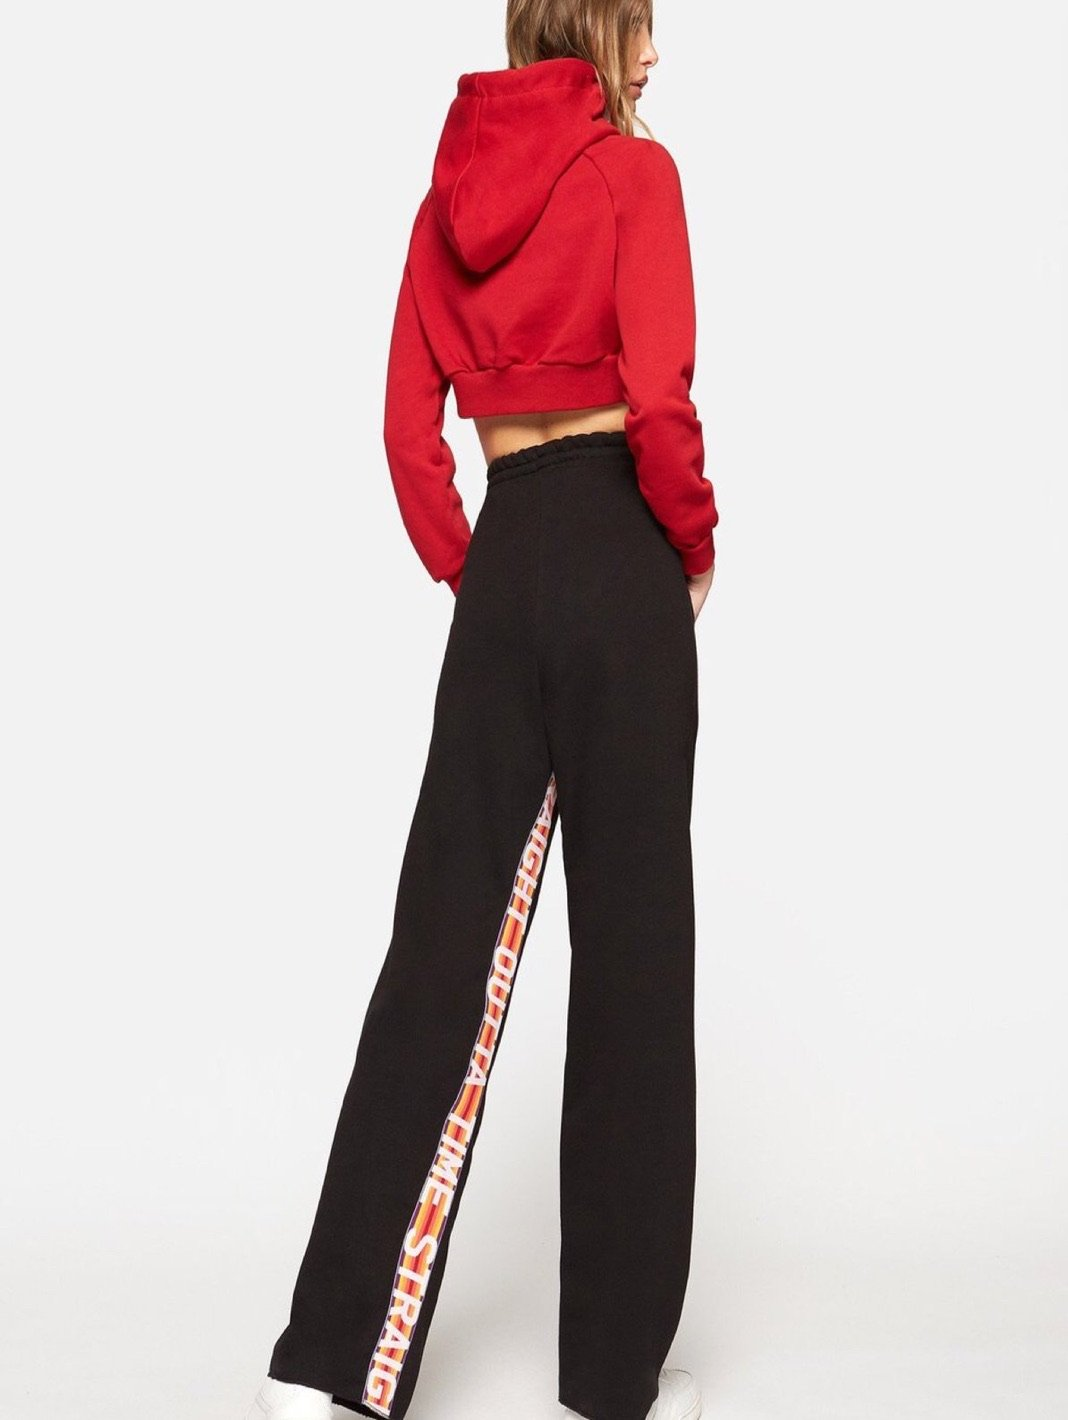 Straight Outta Time Palazzo Pants - The Bobby Boga